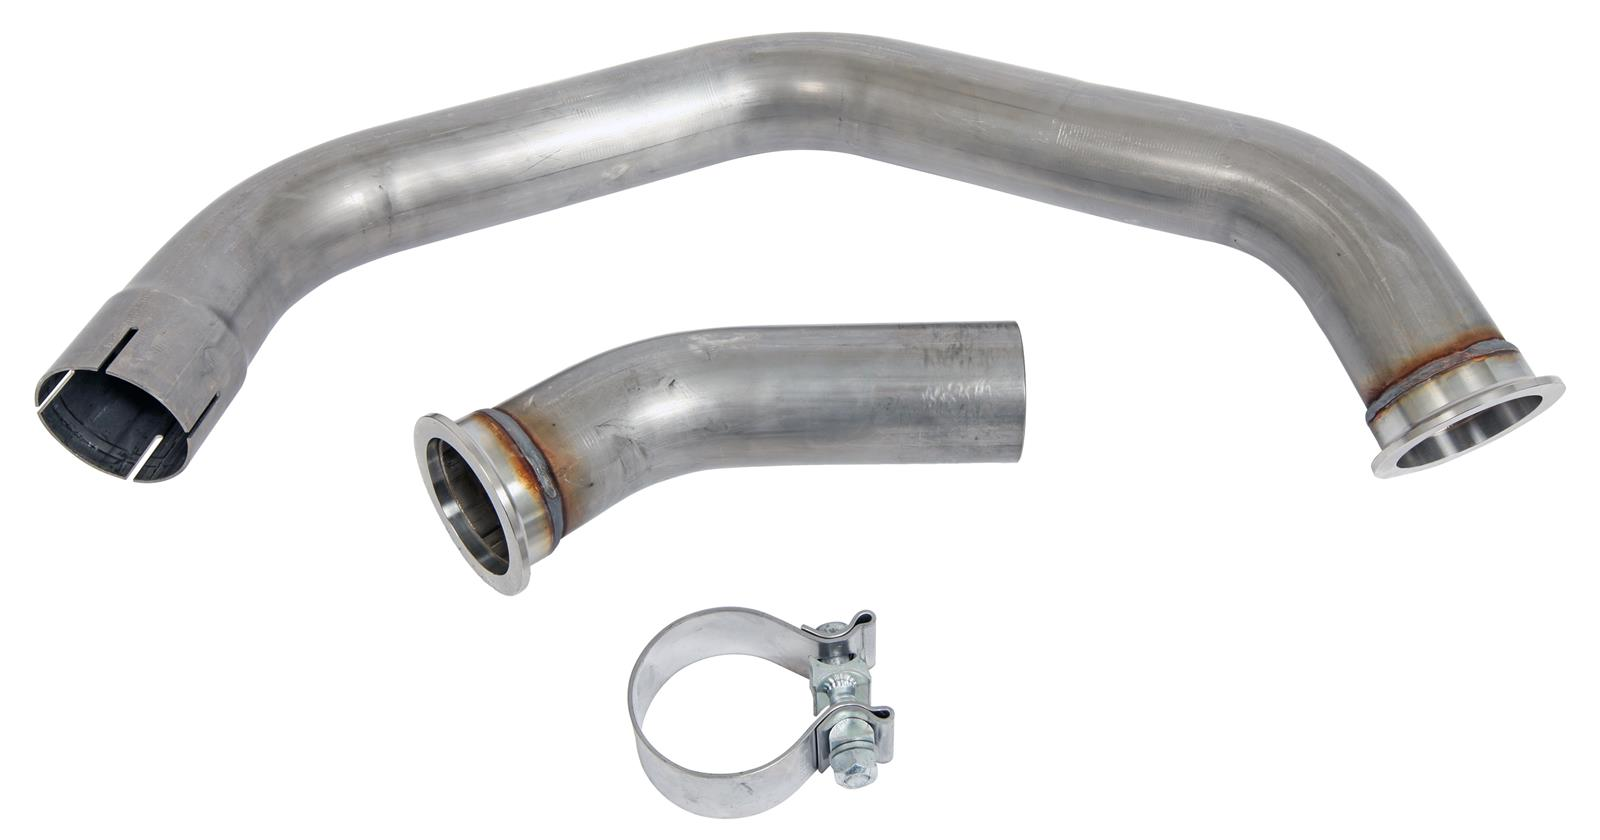 Details about Hooker Headers 8514HKR Exhaust Crossover Pipe